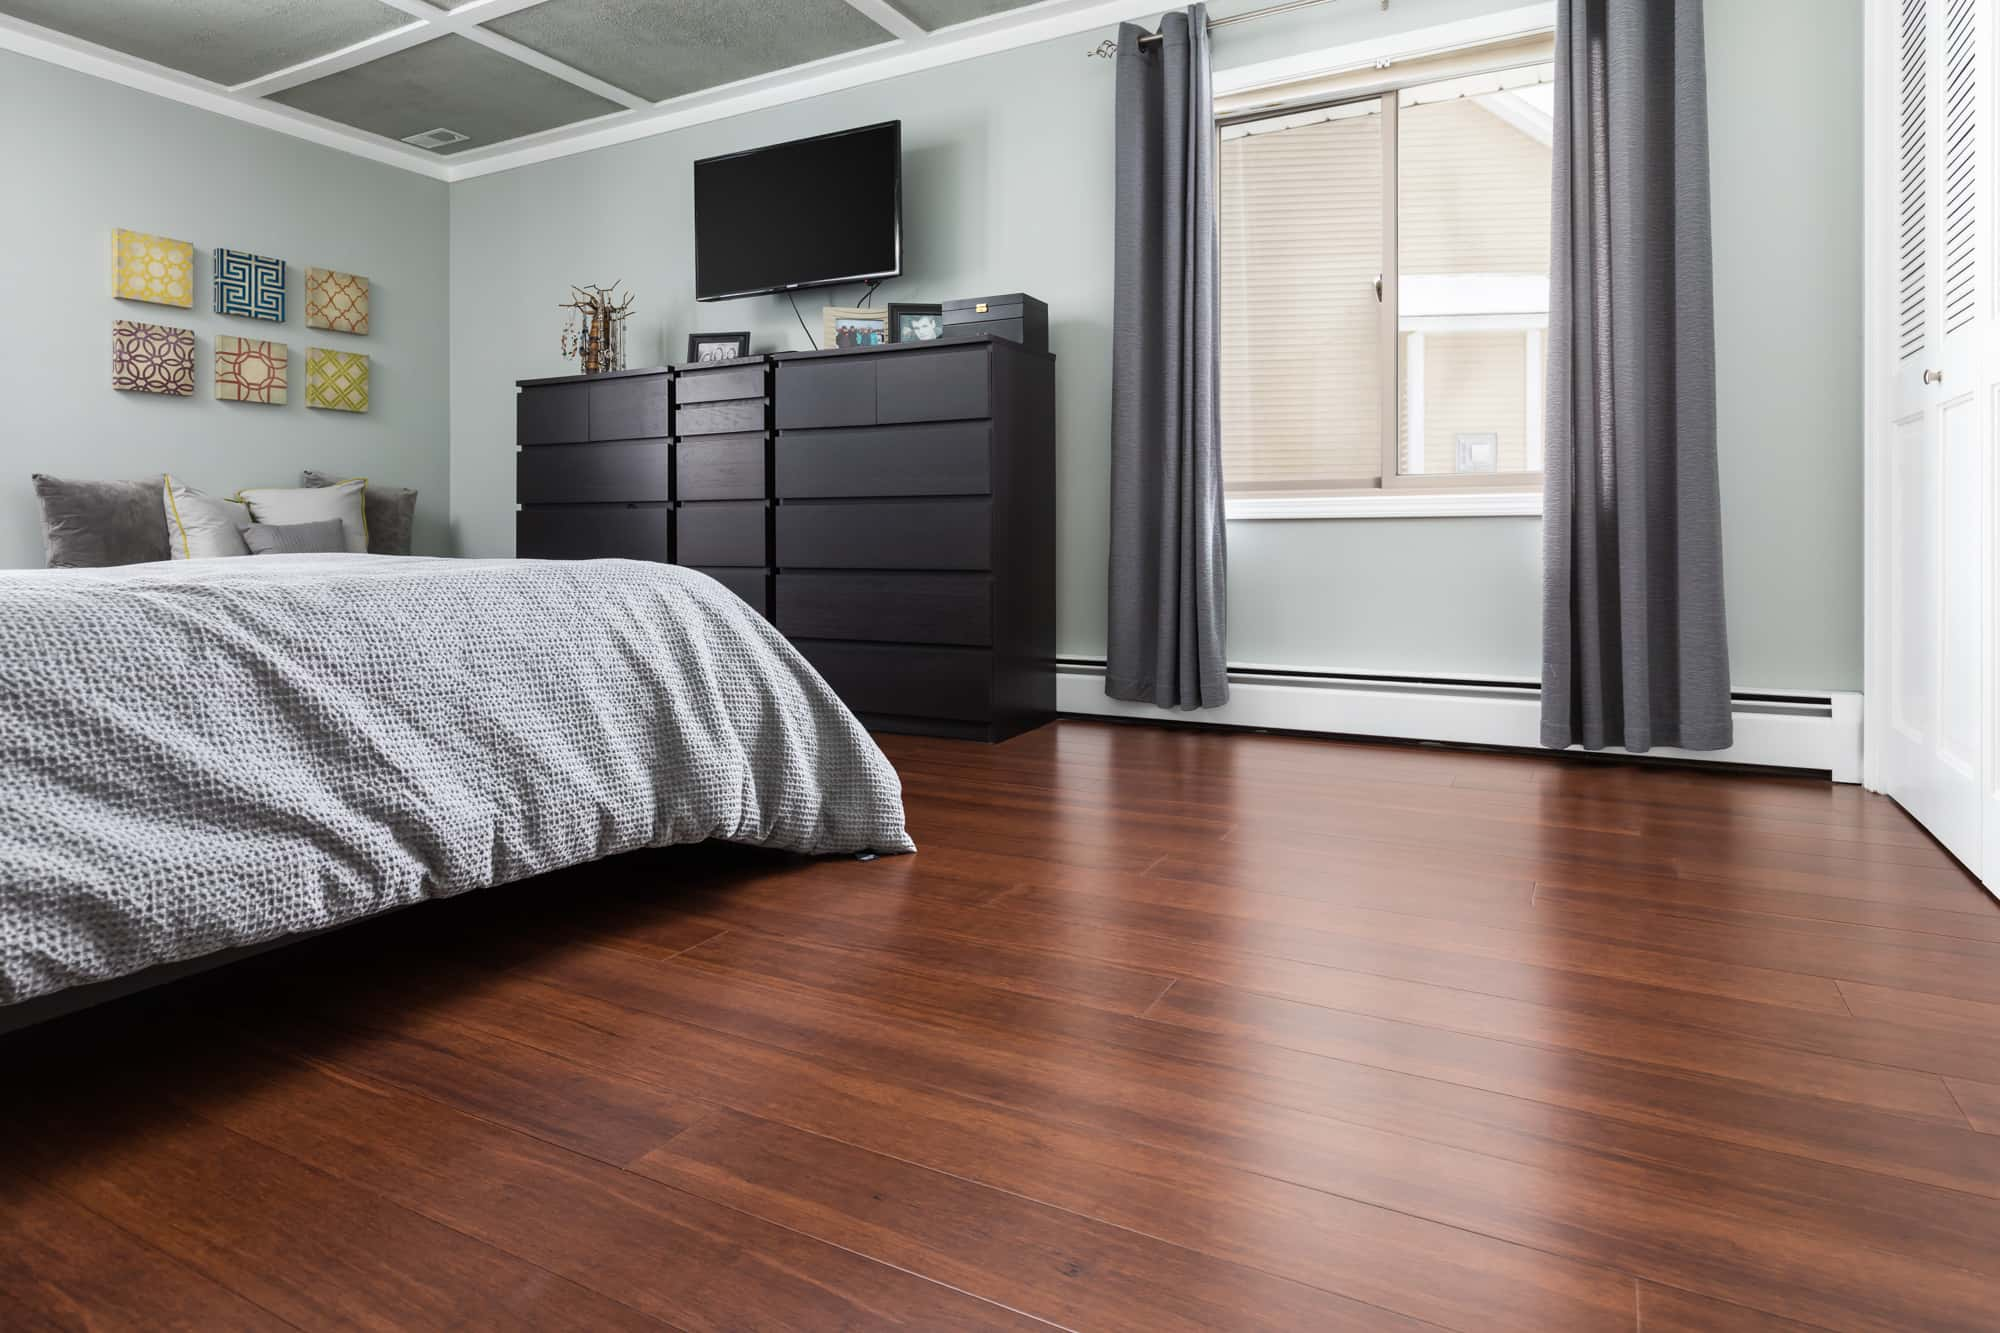 Espresso Bamboo Flooring1 Bedroom min